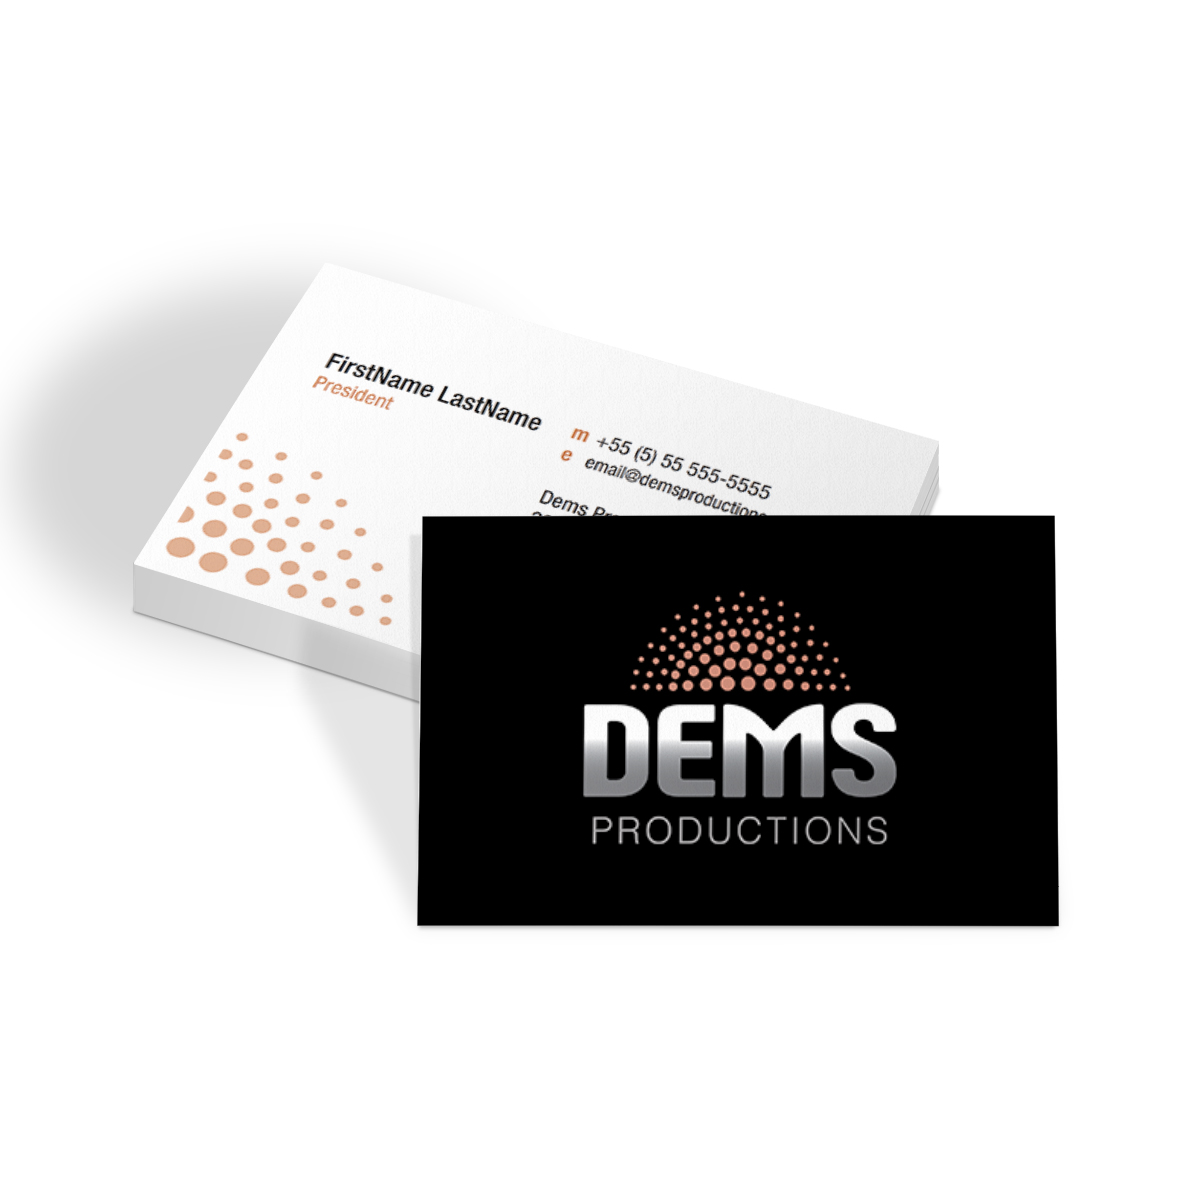 Dems Productions Business Cards